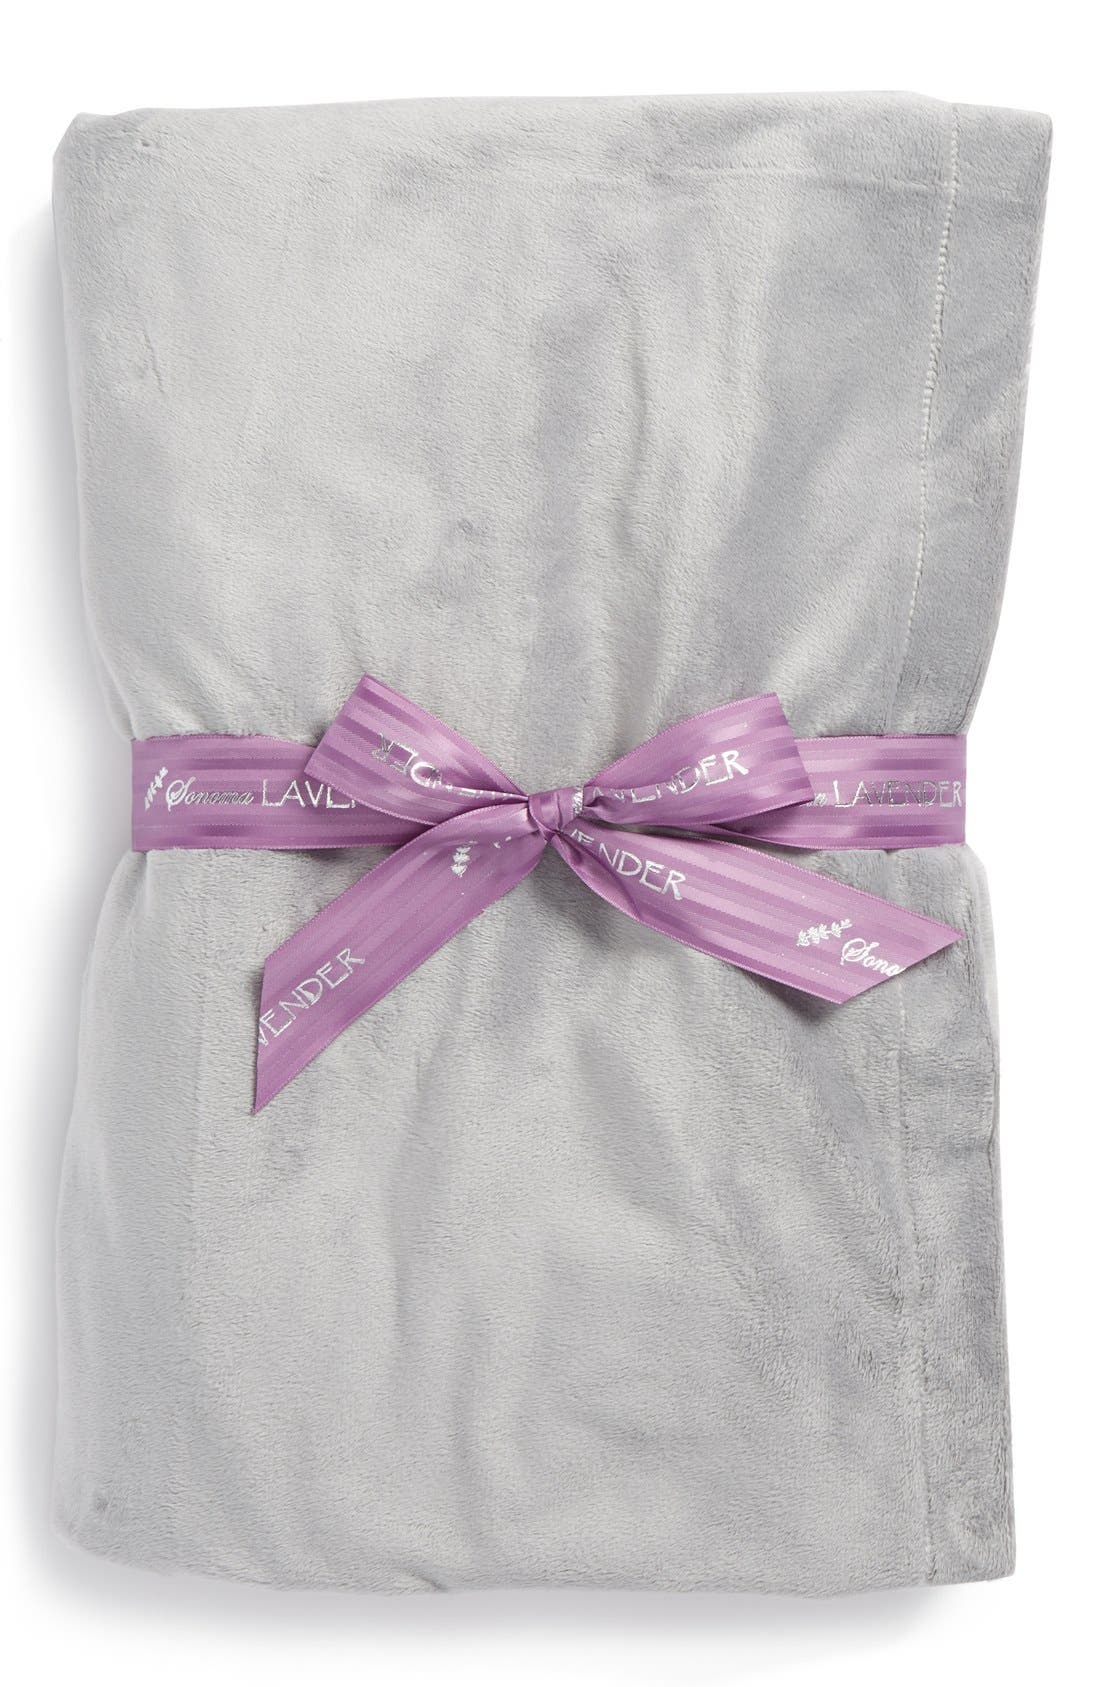 Main Image - Sonoma Lavender Solid Silver Blankie (Nordstrom Exclusive)